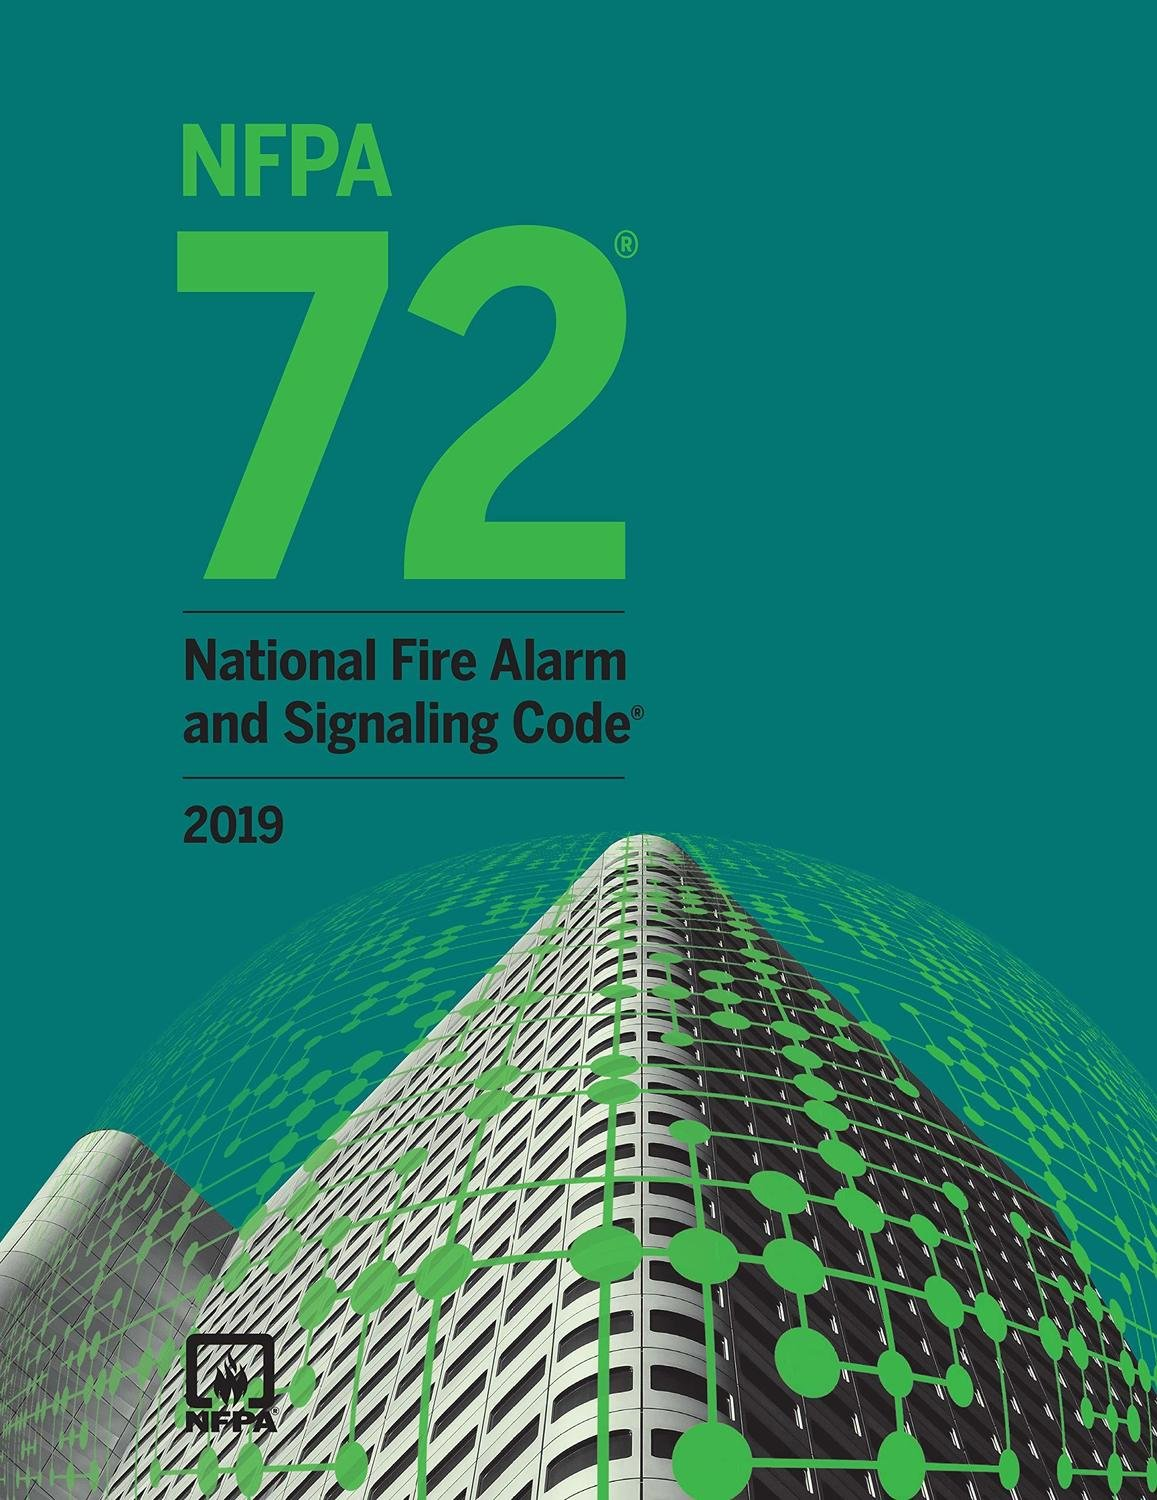 NFPA 72 National Fire Alarm Code - 2019 Edition